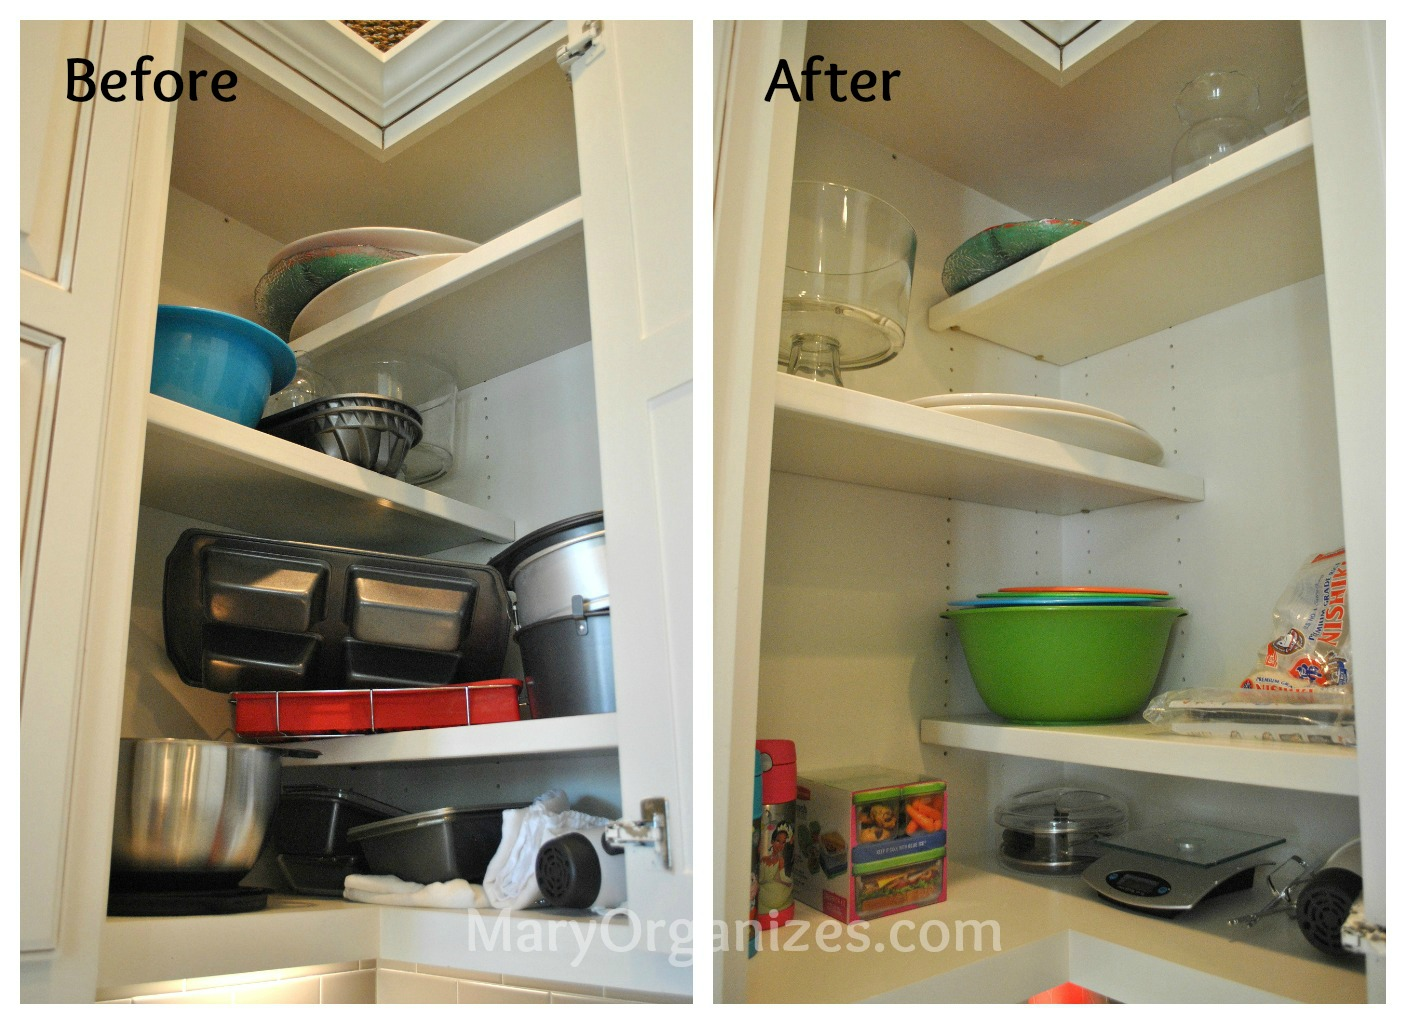 beautiful How To Arrange Kitchen Appliances #5: Mary Organizes